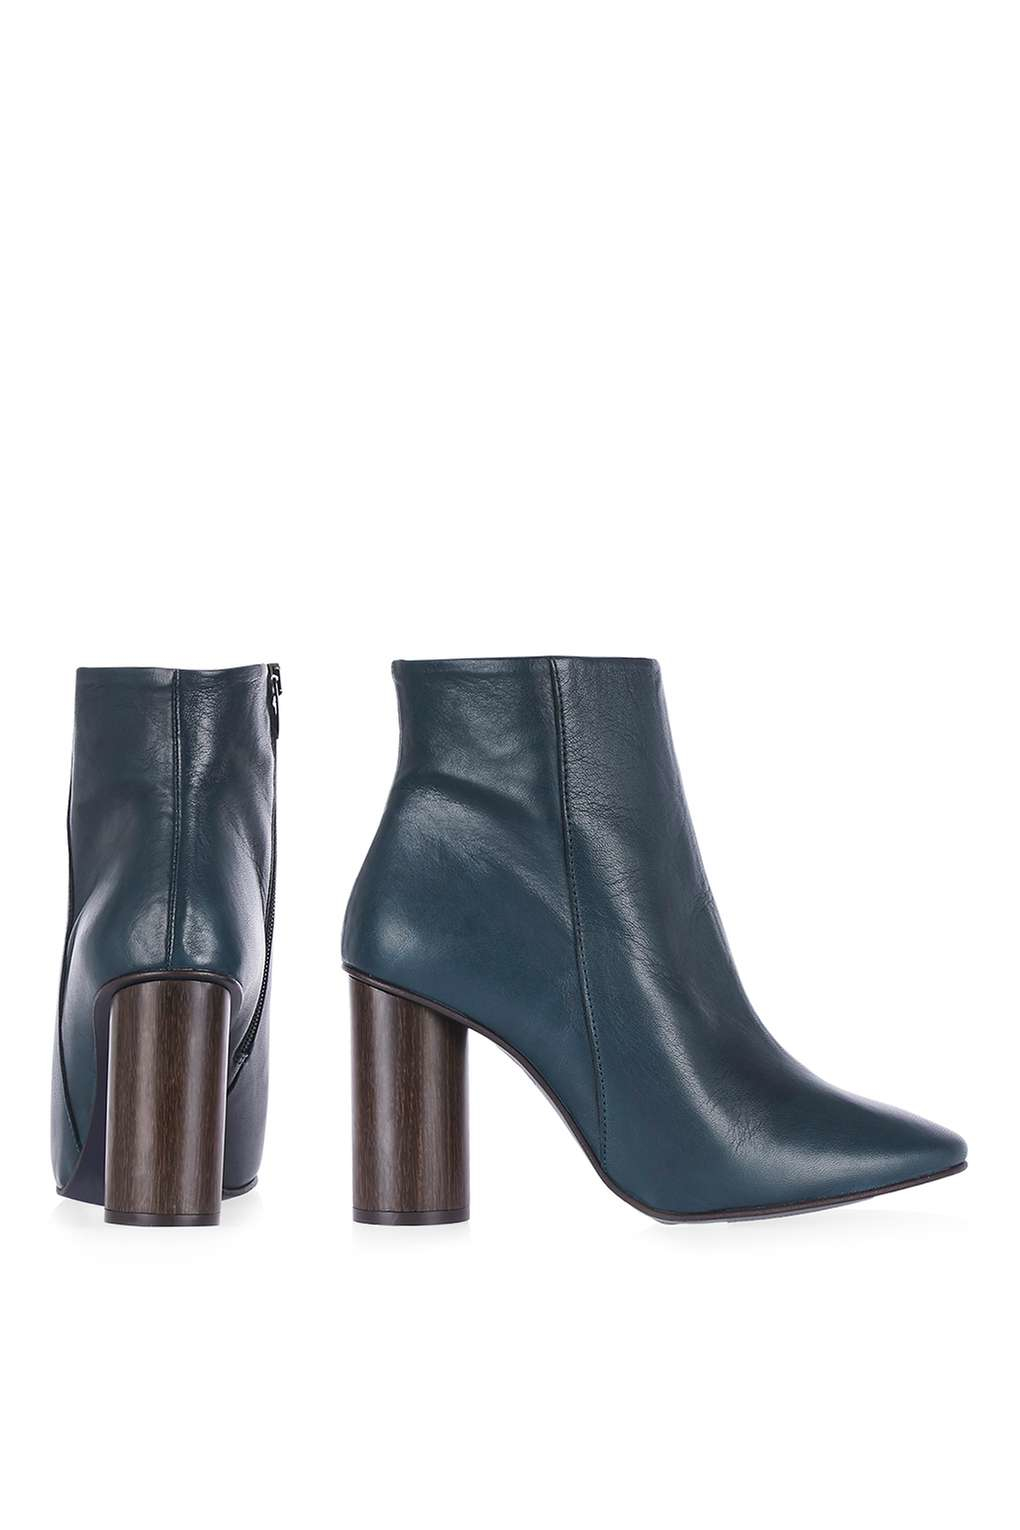 TOPSHOP Leather March Wood Heel Boots in Navy Blue (Blue)